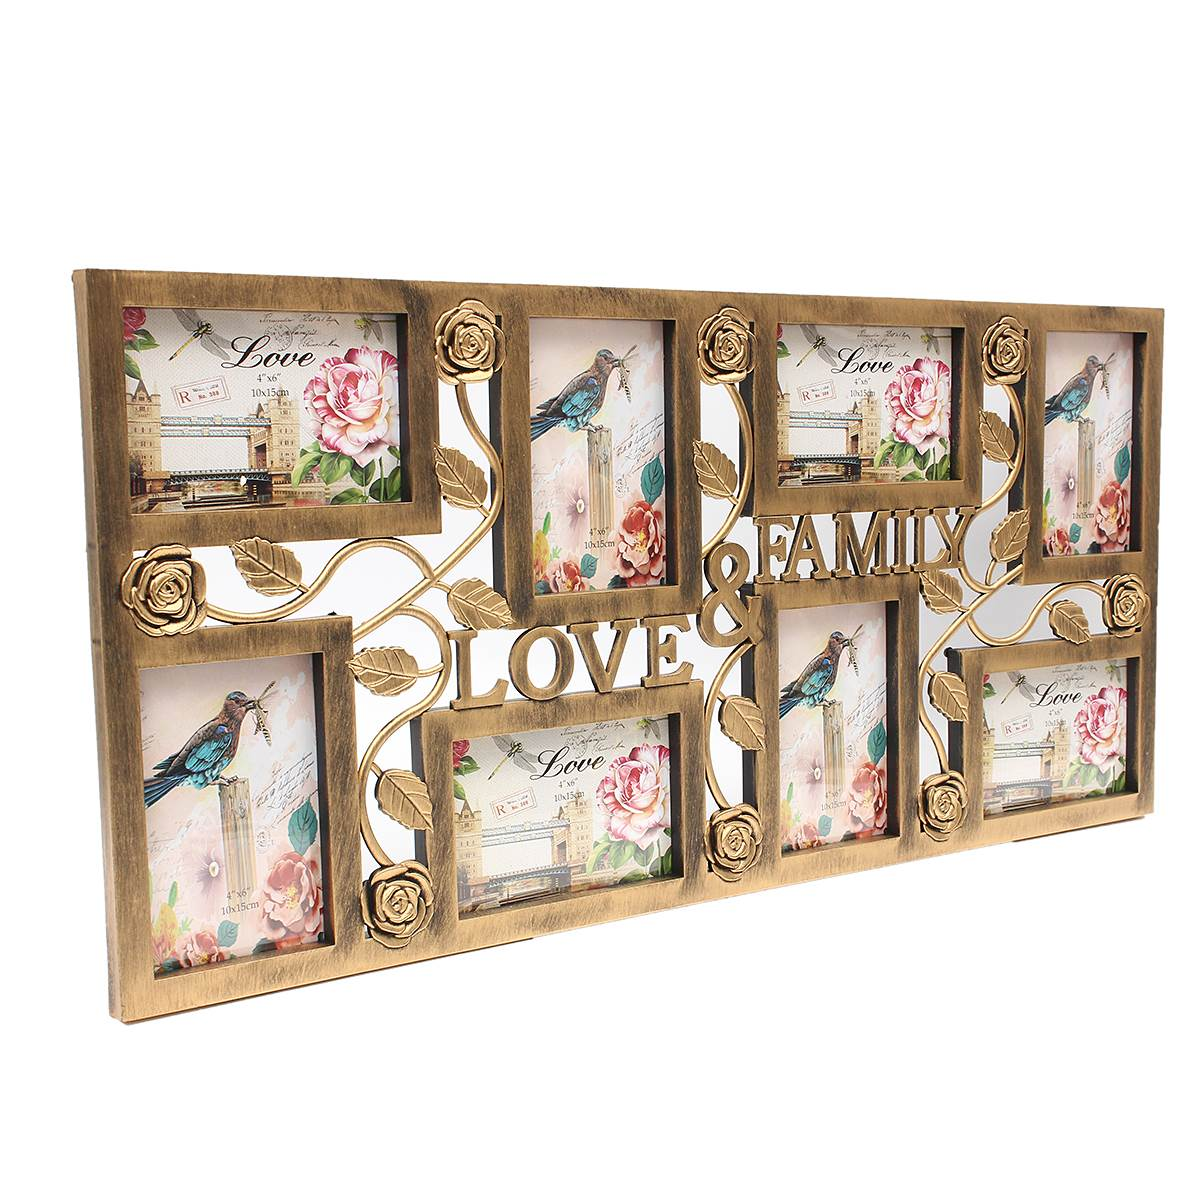 8 picture photo frame family love large multi wall hanging collage baby shower wedding birthday gift